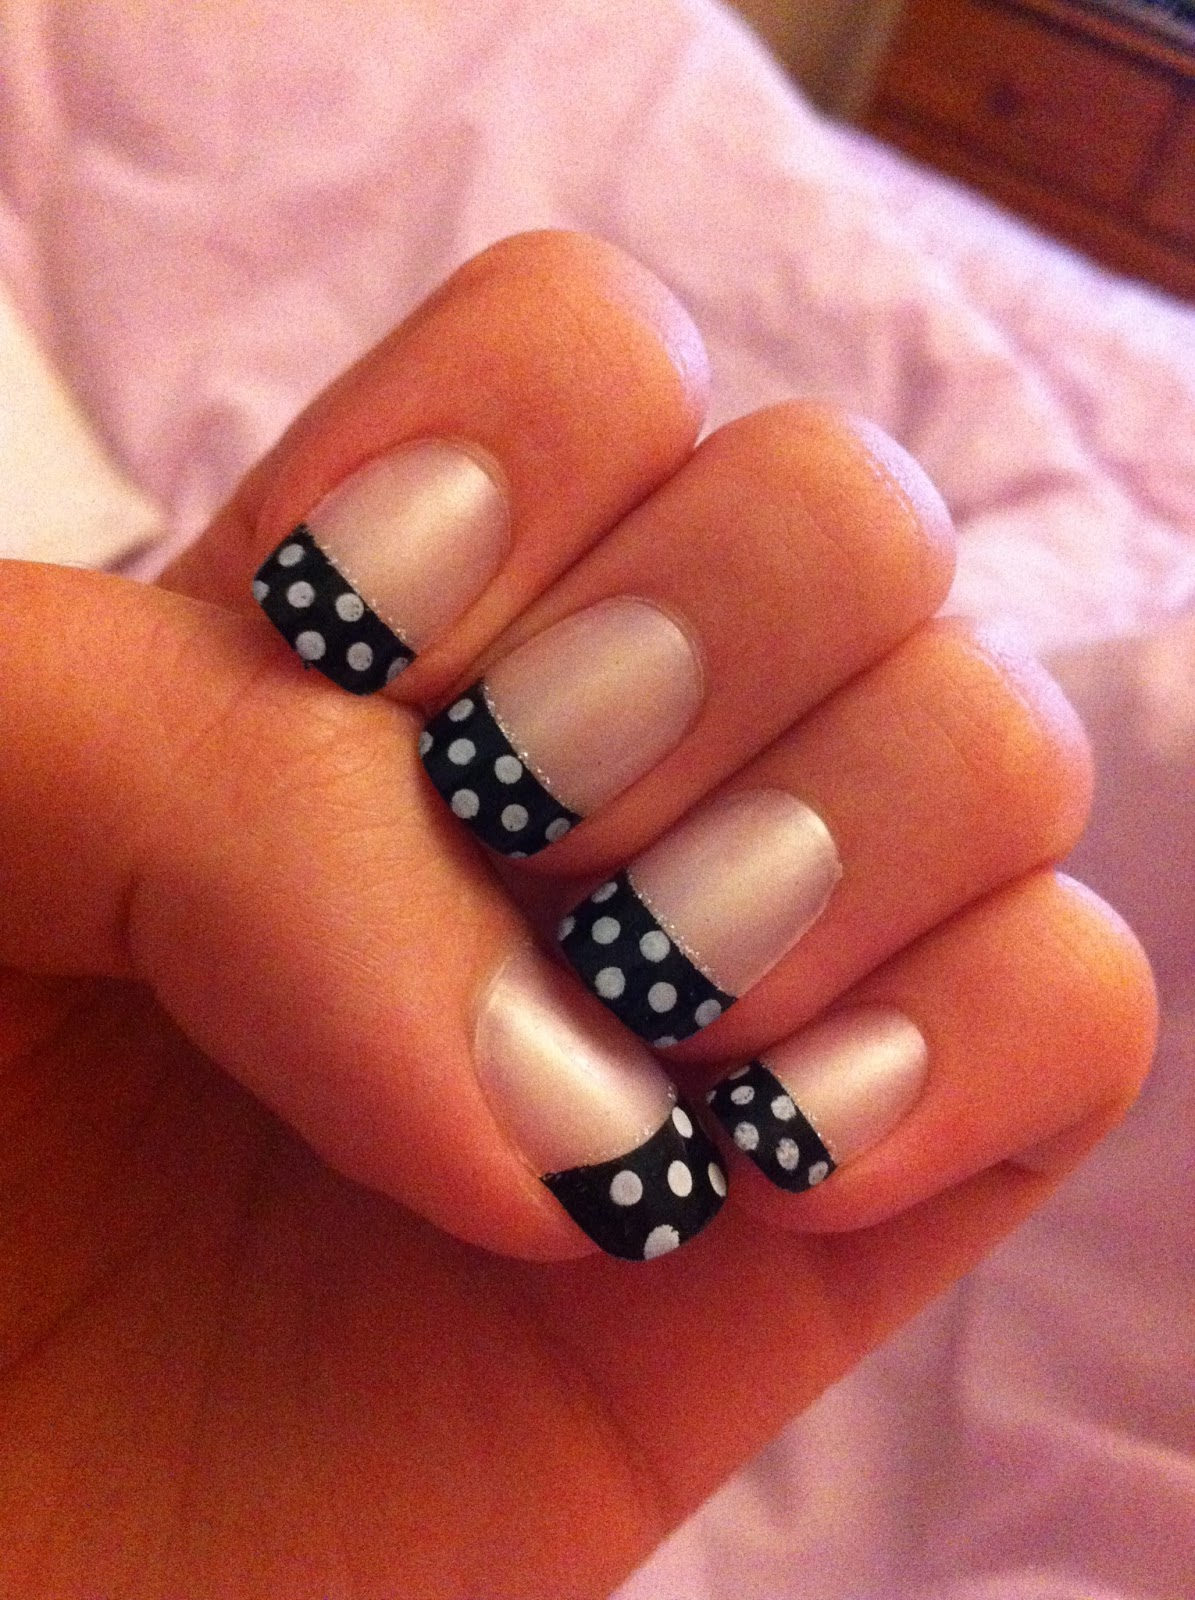 Fashion Nail Trend: Laurenlovesmakeup'xoxo: Primark Pound Fashion Nails